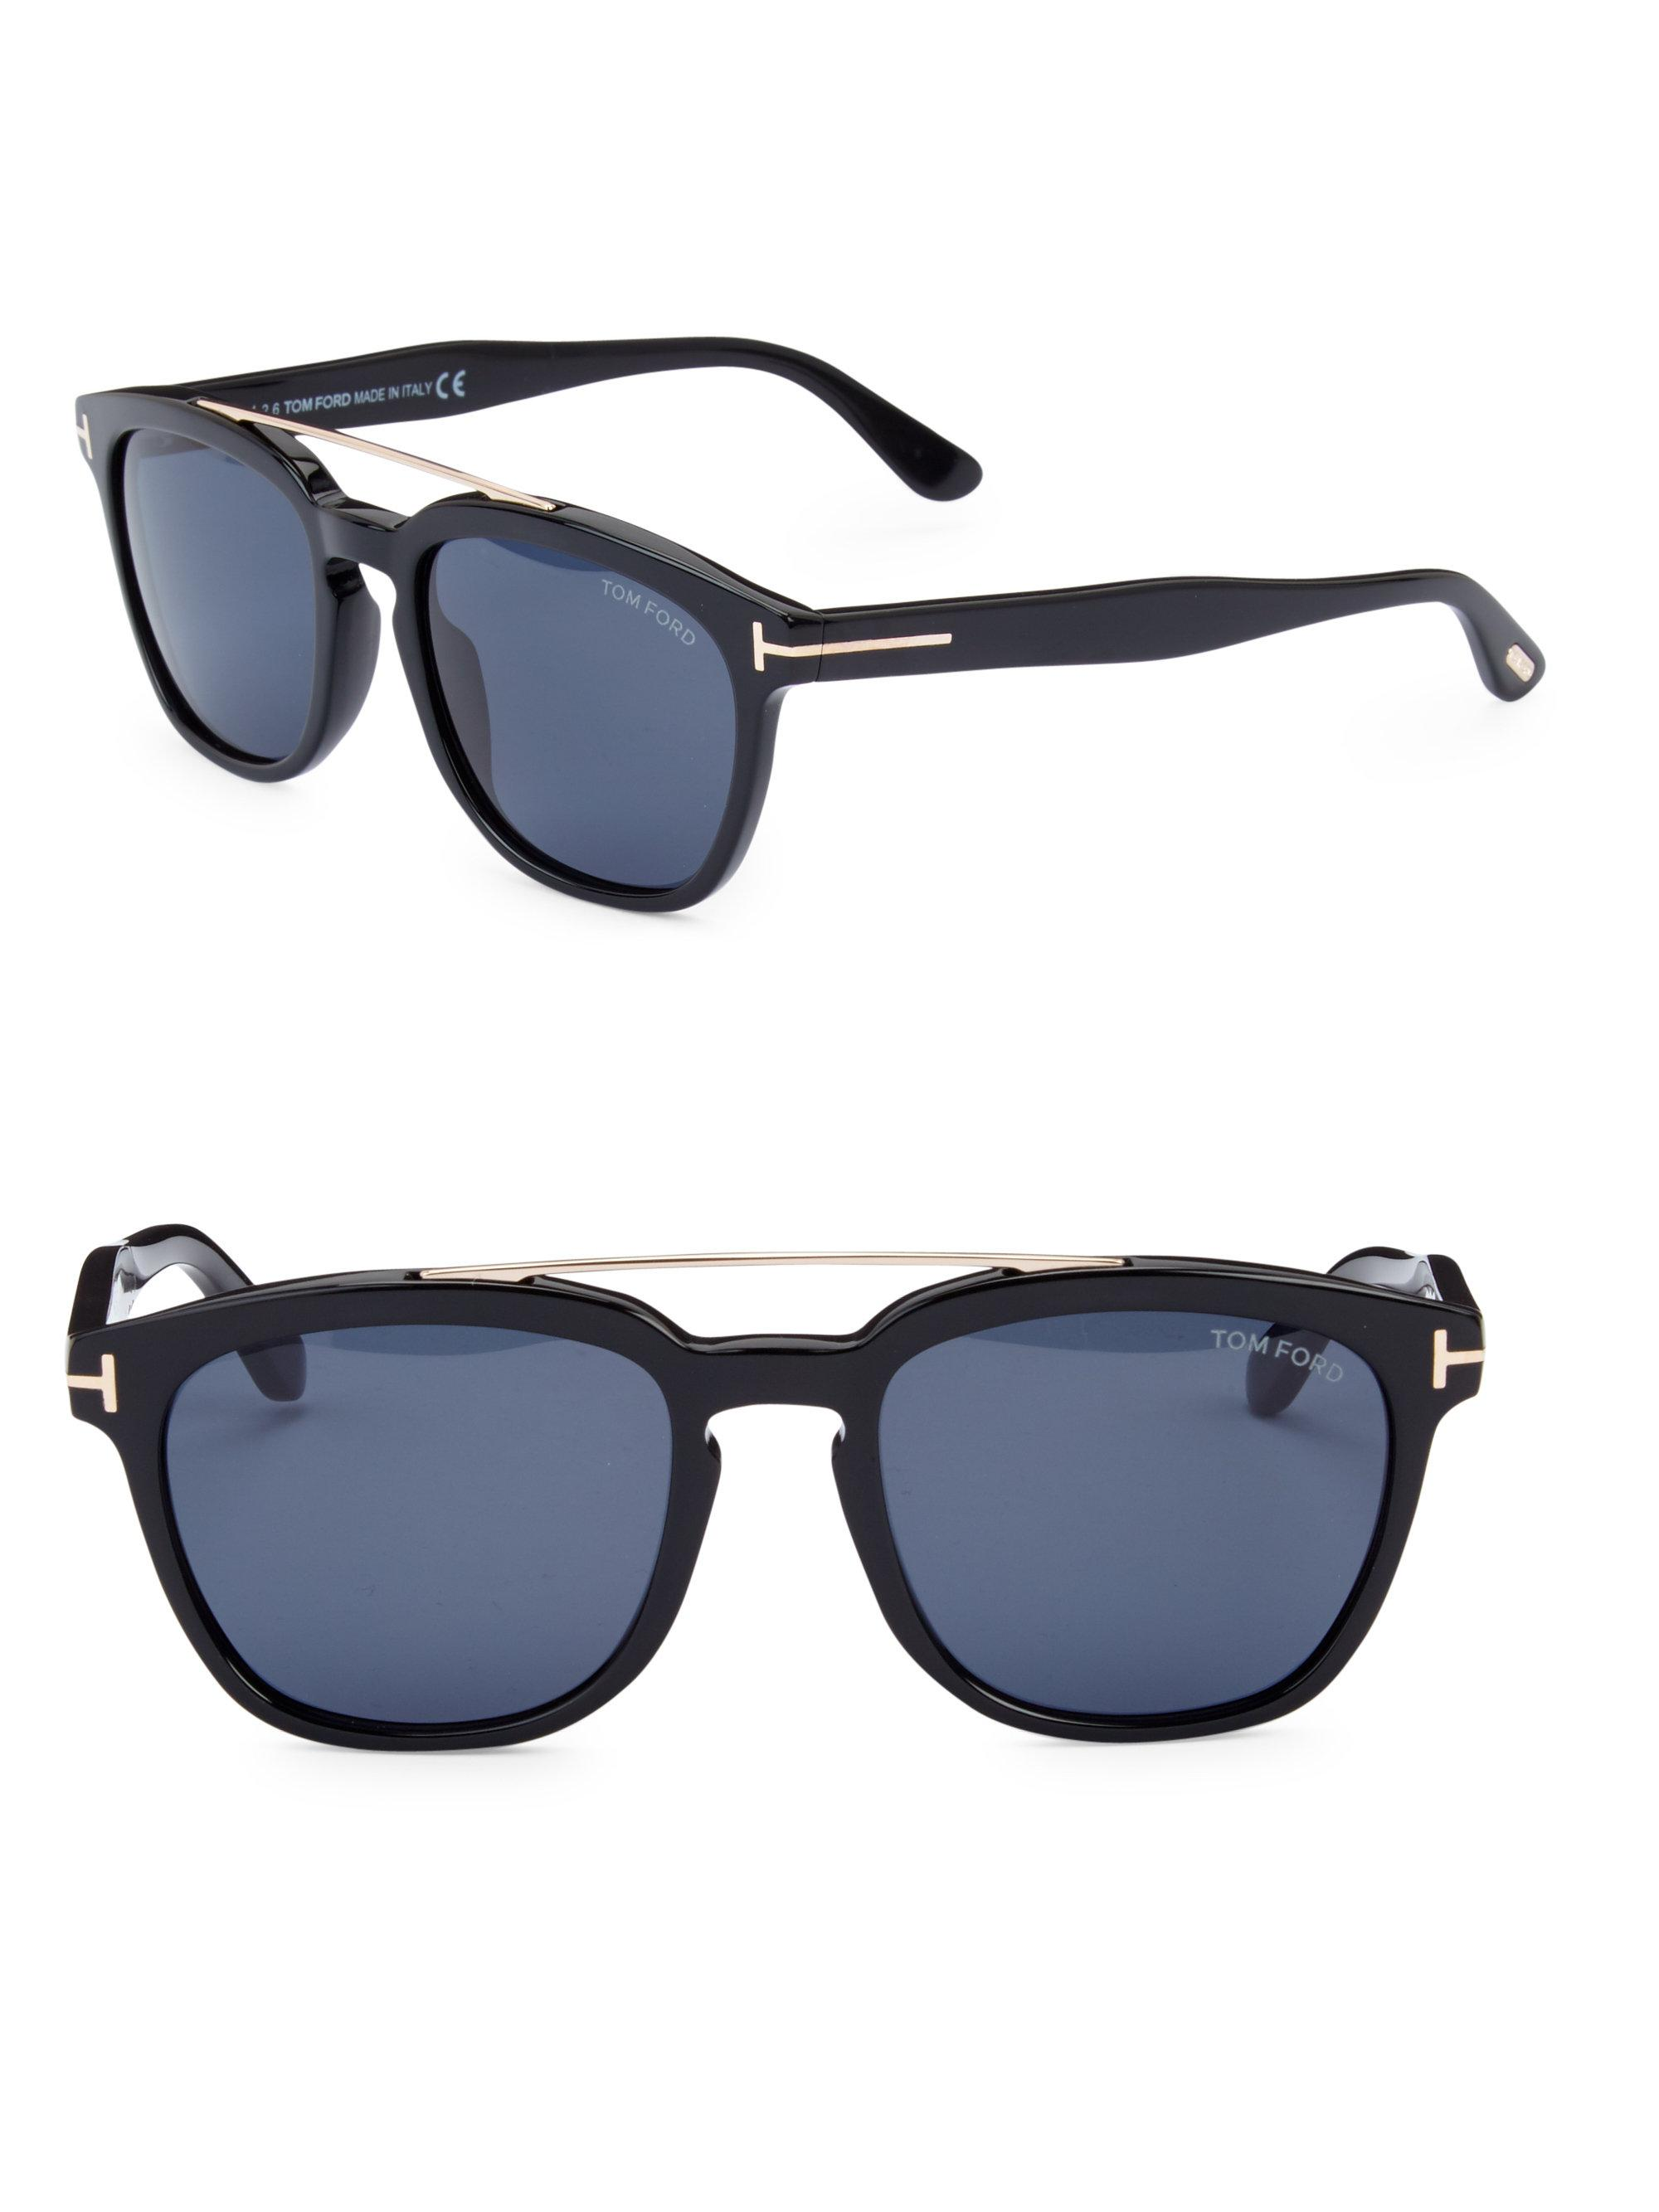 dbdcdc6cdacc4 Tom Ford Holt 54mm Square Sunglasses in Black for Men - Lyst